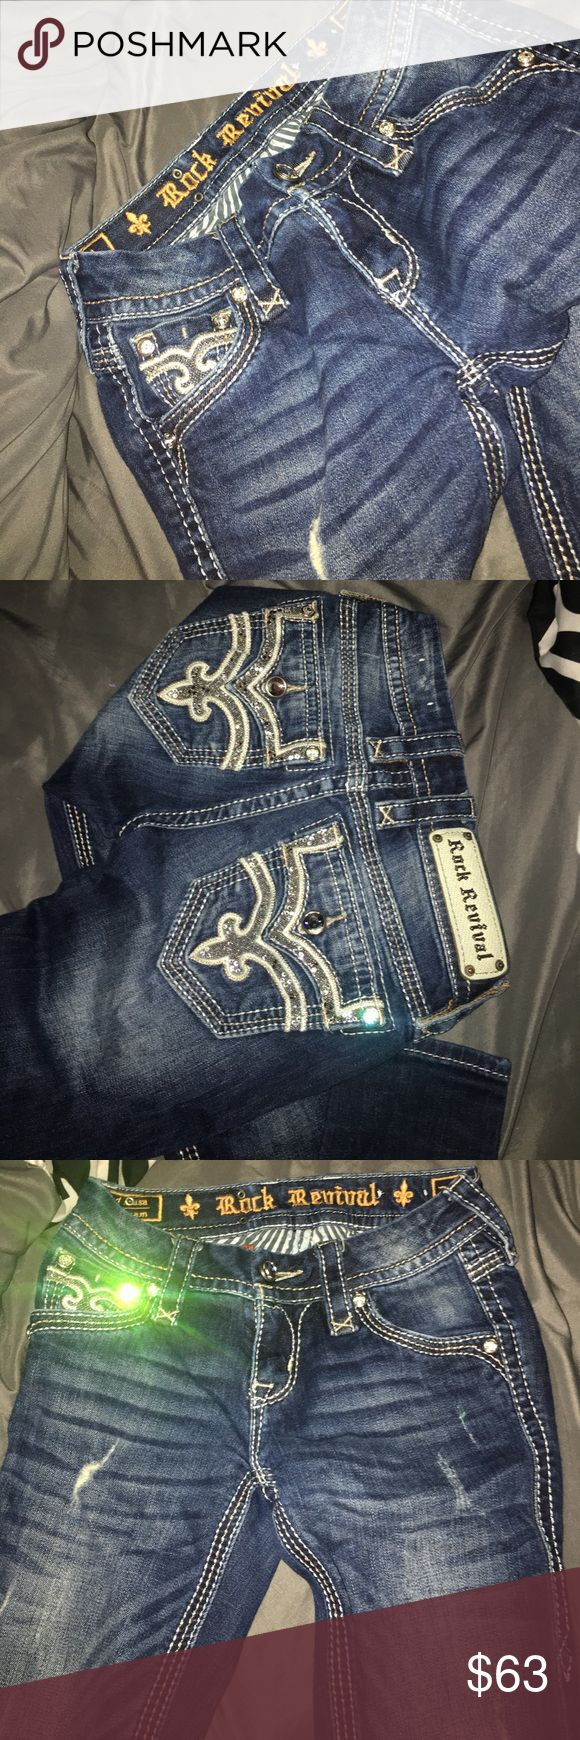 Rock revival jeans A little bit worn out so selling them cheap:) still in good condition though. Skinny jeans not flare. Rock Revival Pants Skinny